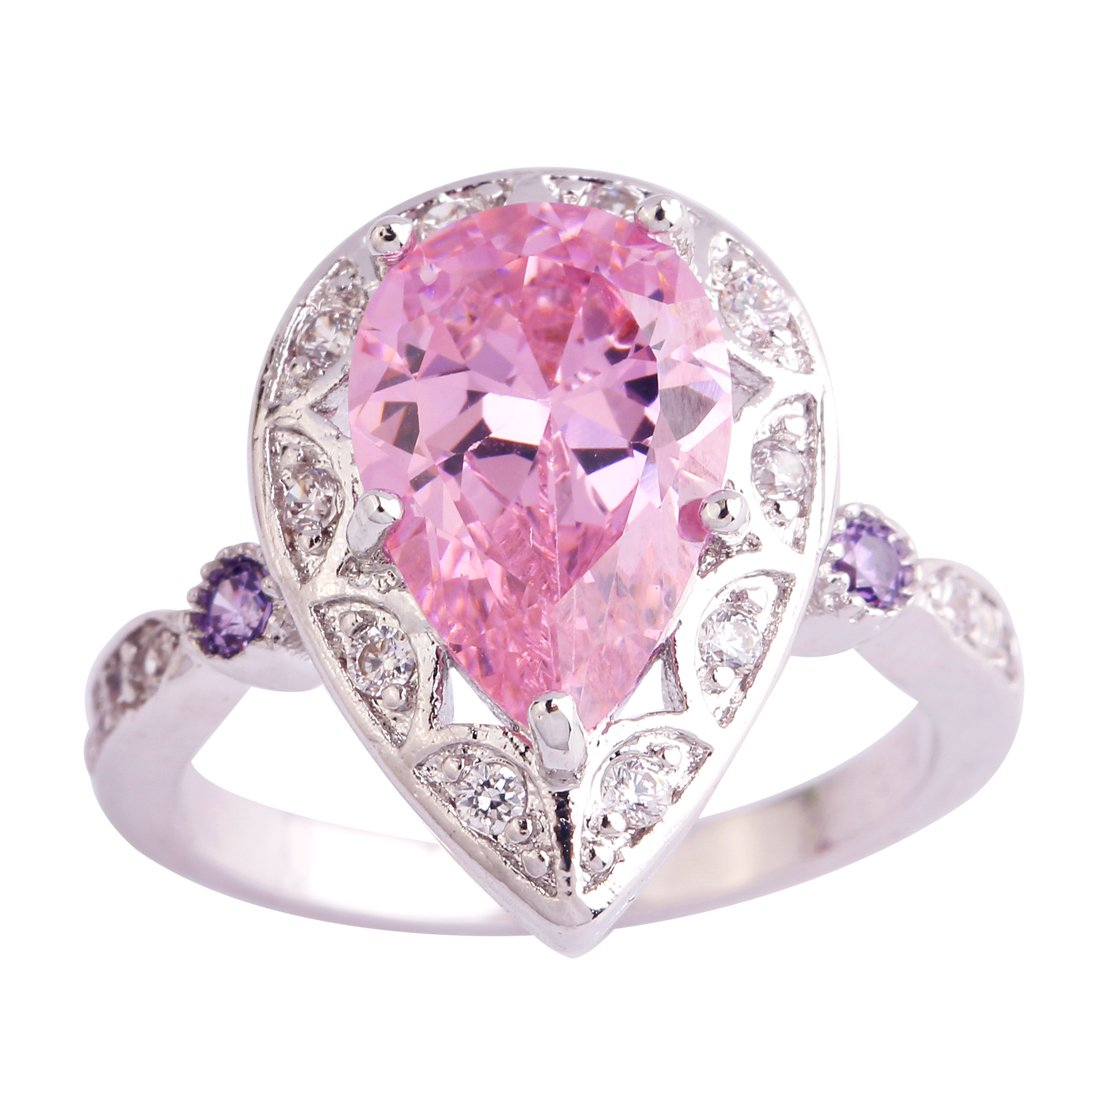 Amazon.com : Veunora 925 Sterling Silver Created Pear Cut Ruby ...